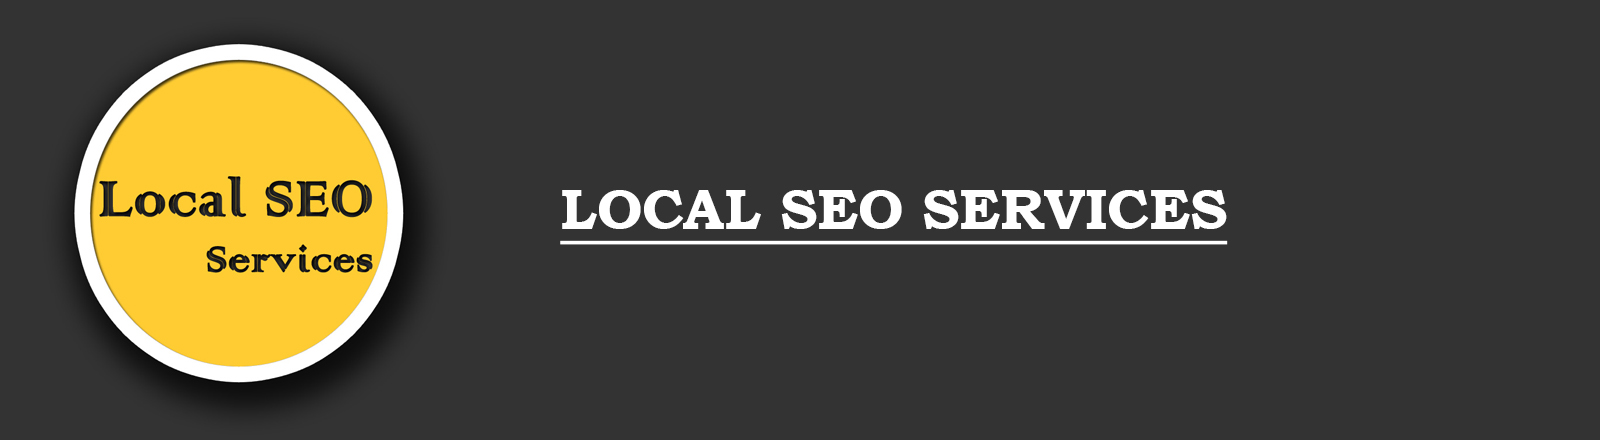 Local seo services by TheSEOGuy